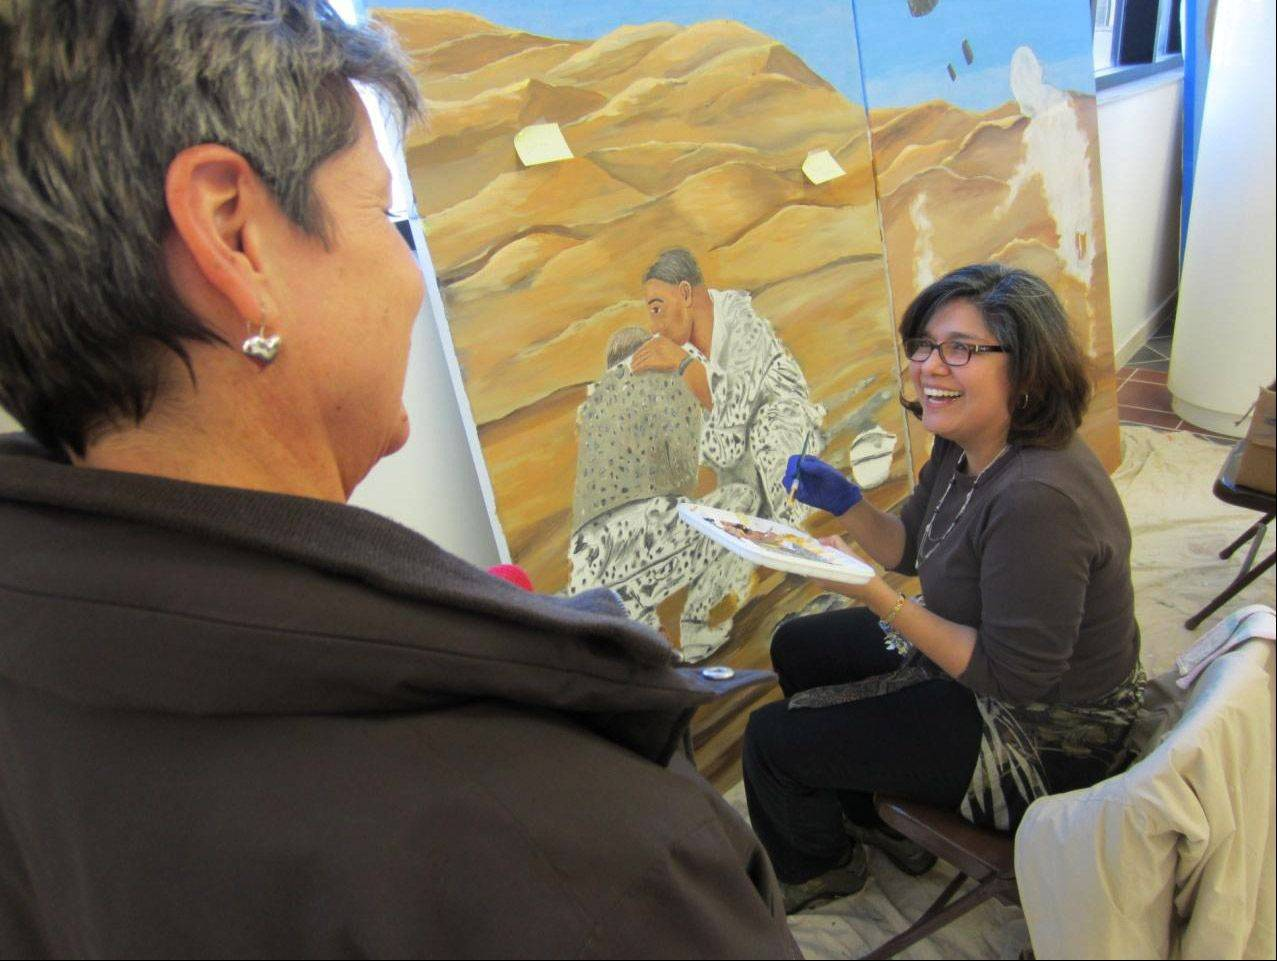 Navy veteran and Lovell FHCC employee Letty Knight, right, talks with her co-worker, Christine Misovie, about the section of the mural Knight is painting, which depicts Desert Storm.